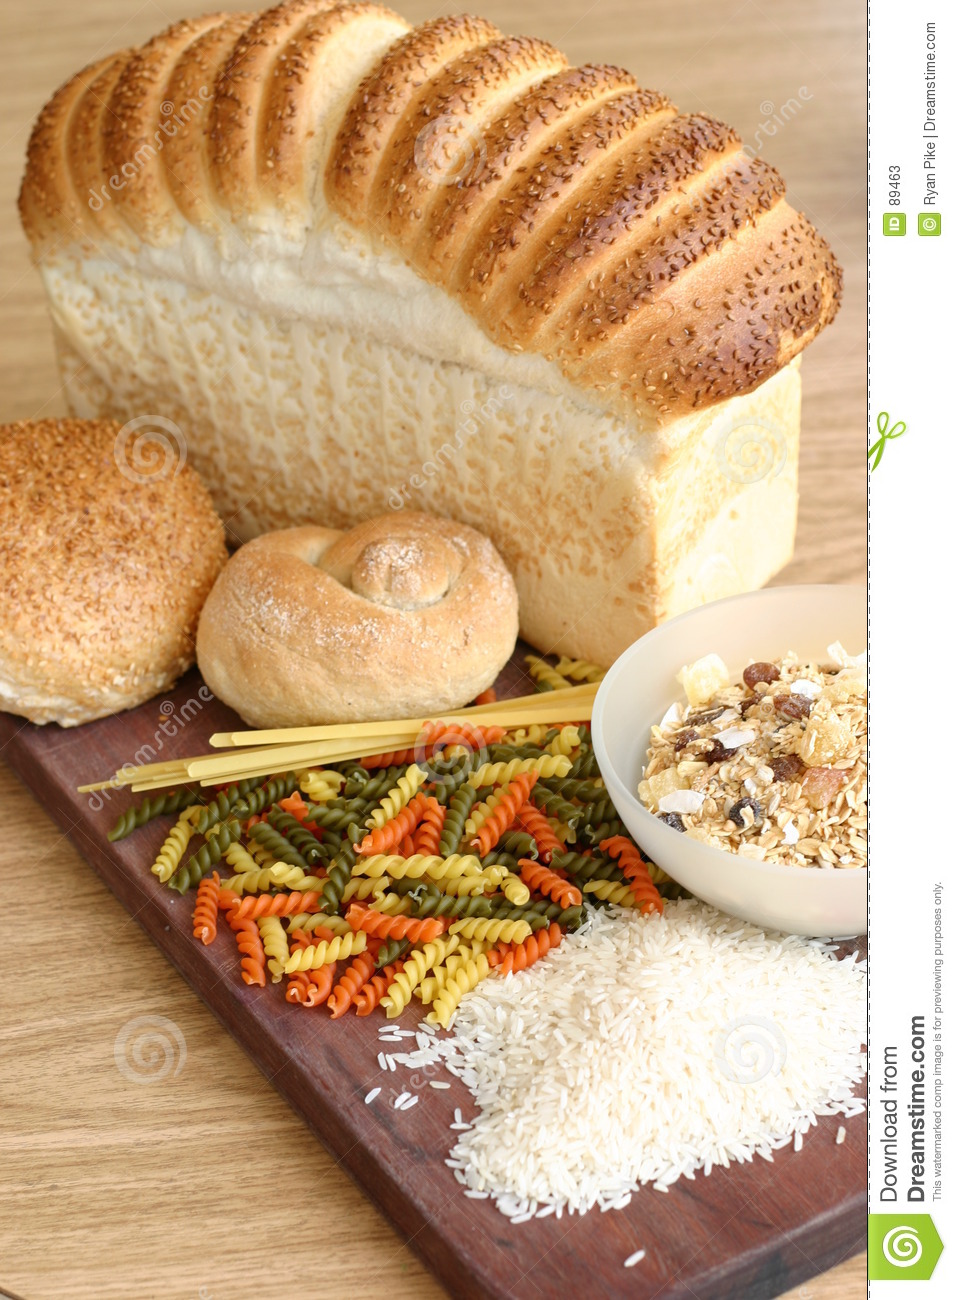 Bread Pasta Cereal Rice Stock Photos - Image: 89463